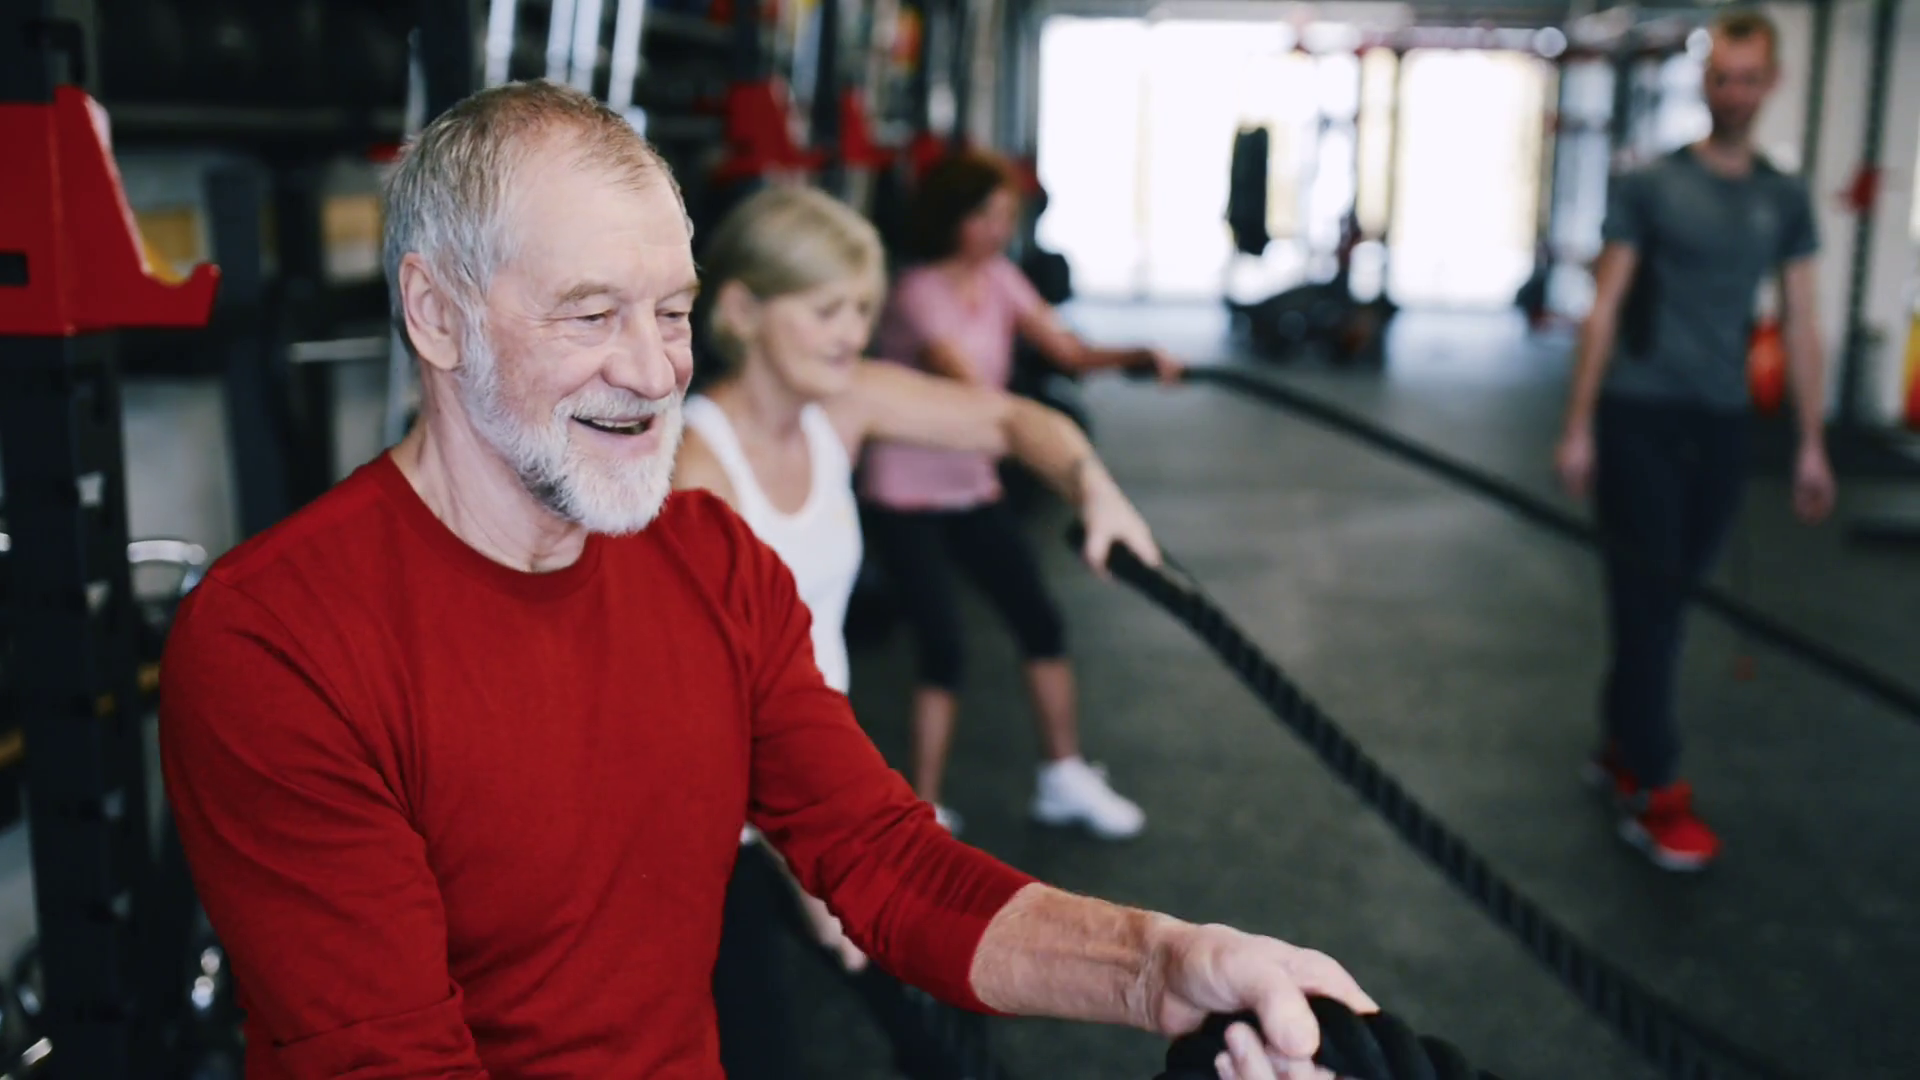 Seniors In Gym With Personal Trainer Exercising With Battle Ropes Stock Video Footage Storyblocks